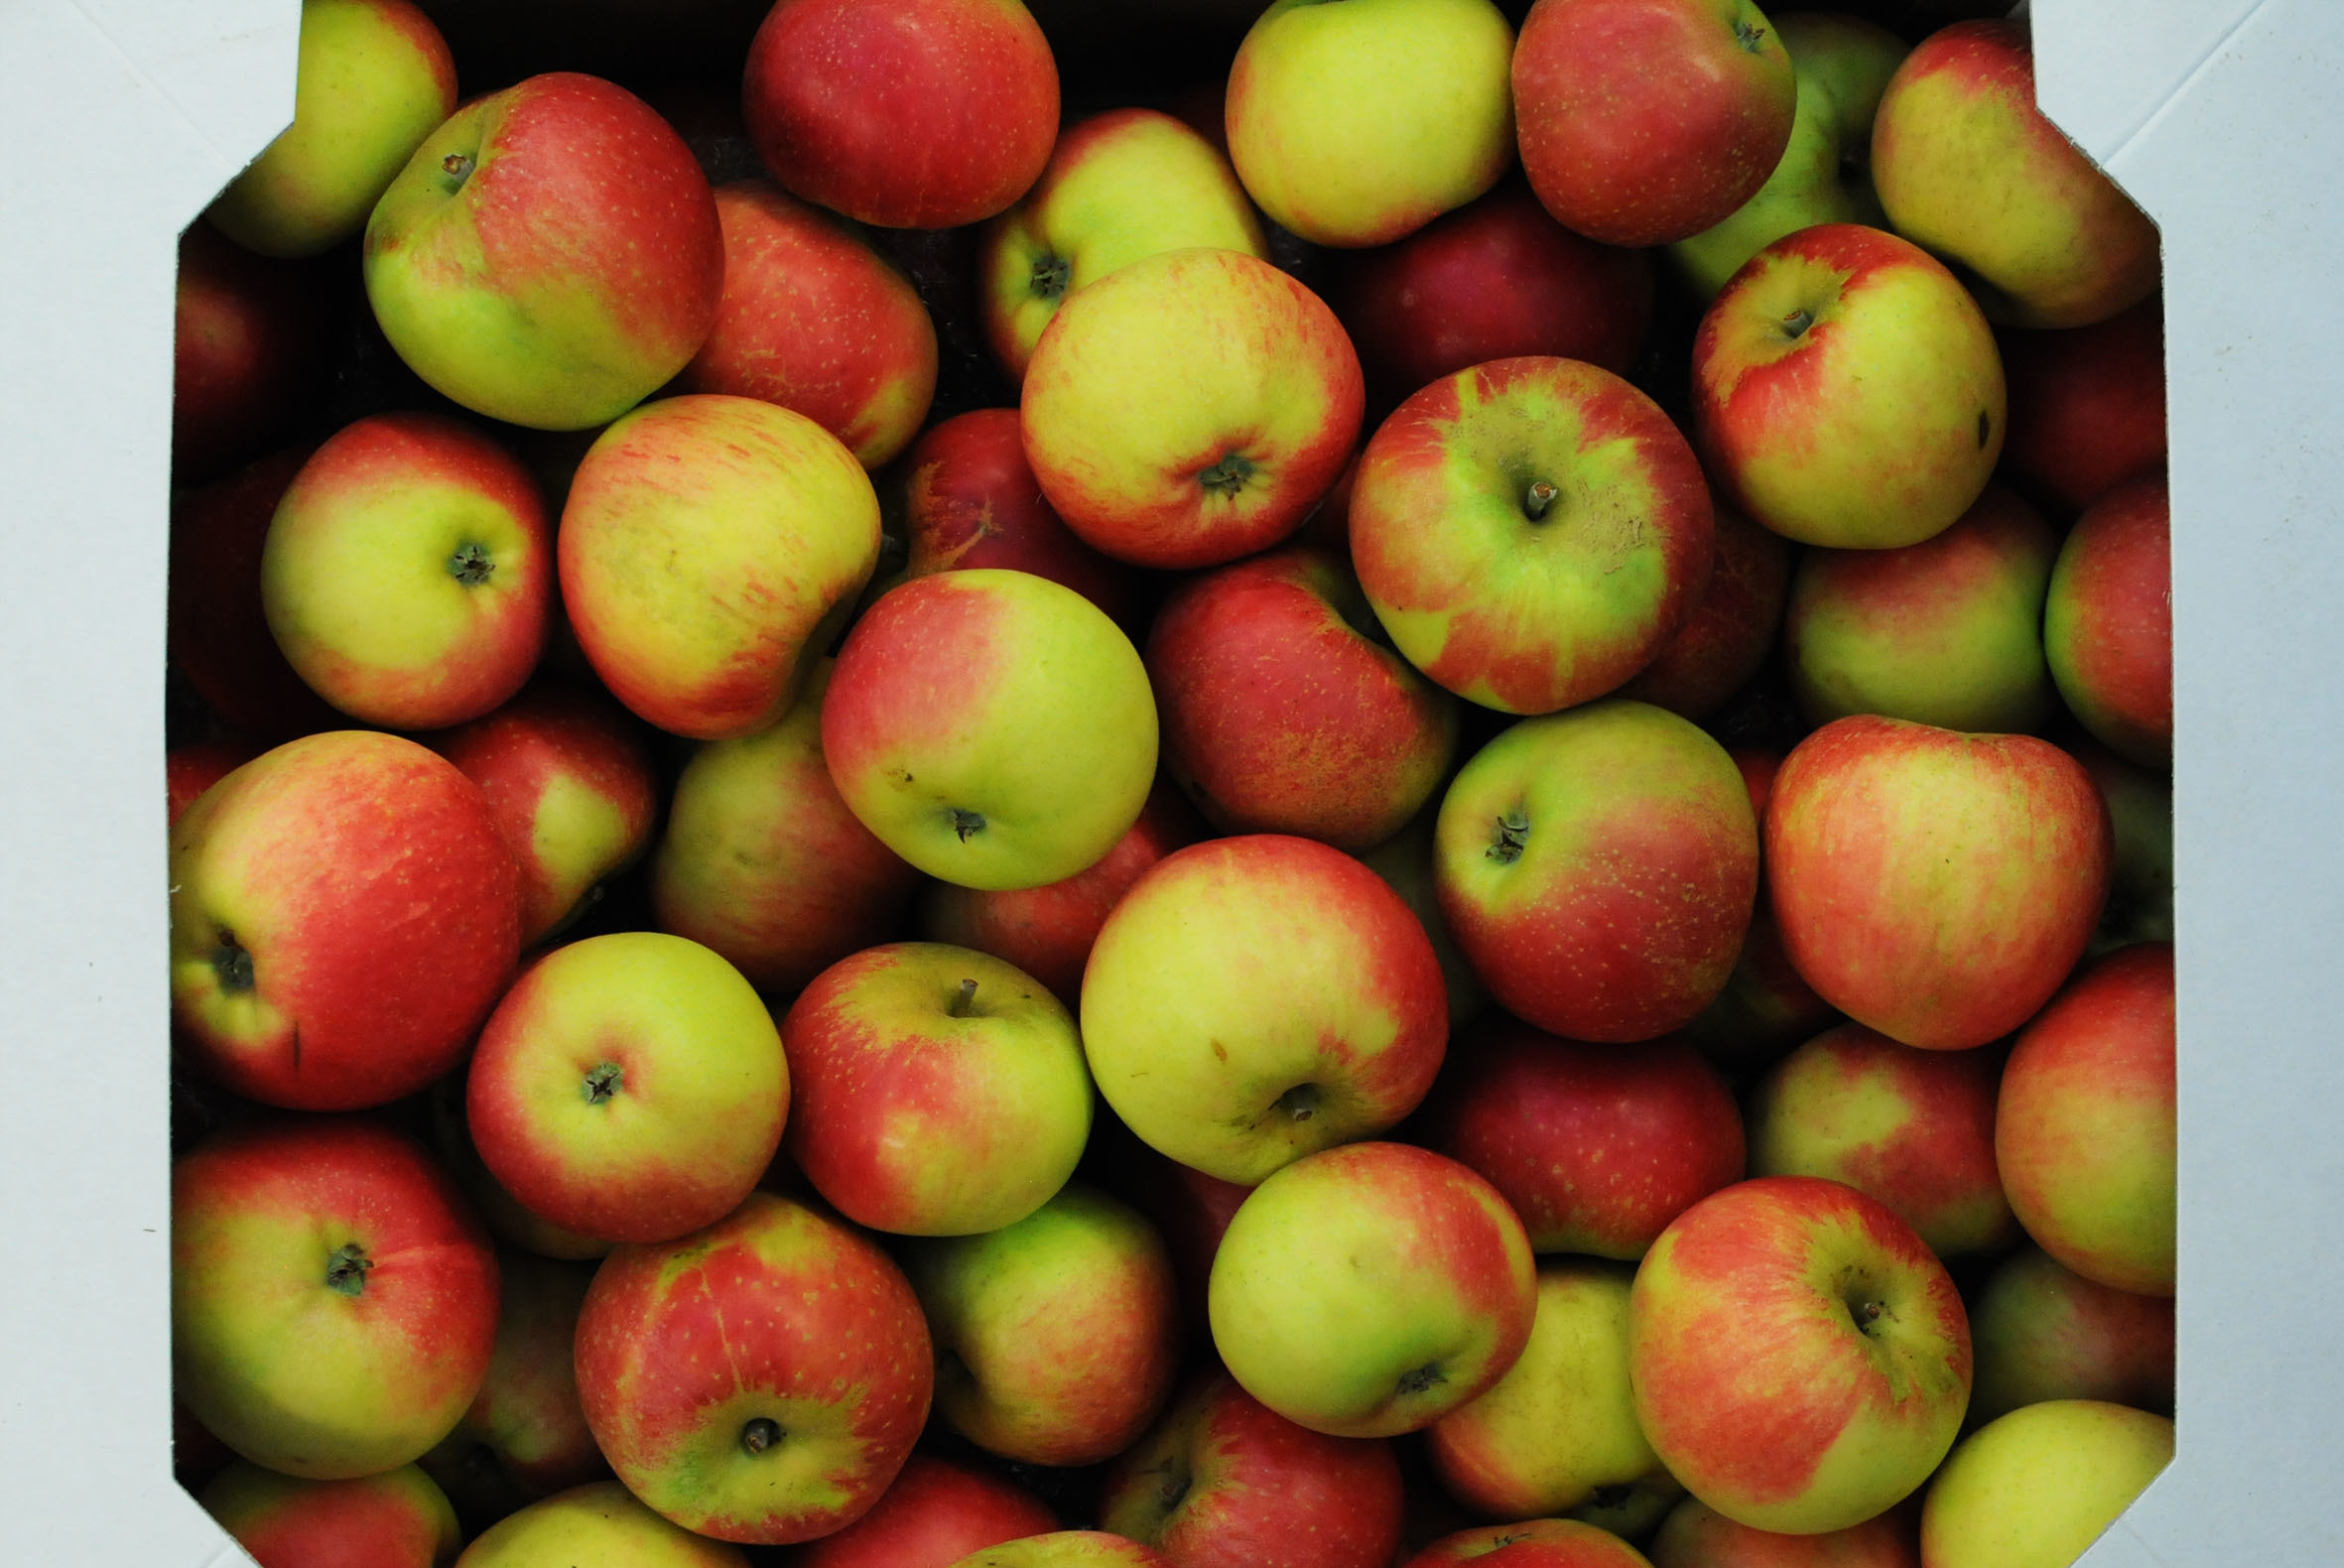 Discovery_apples.jpg?mtime=20170922121309#asset:11431